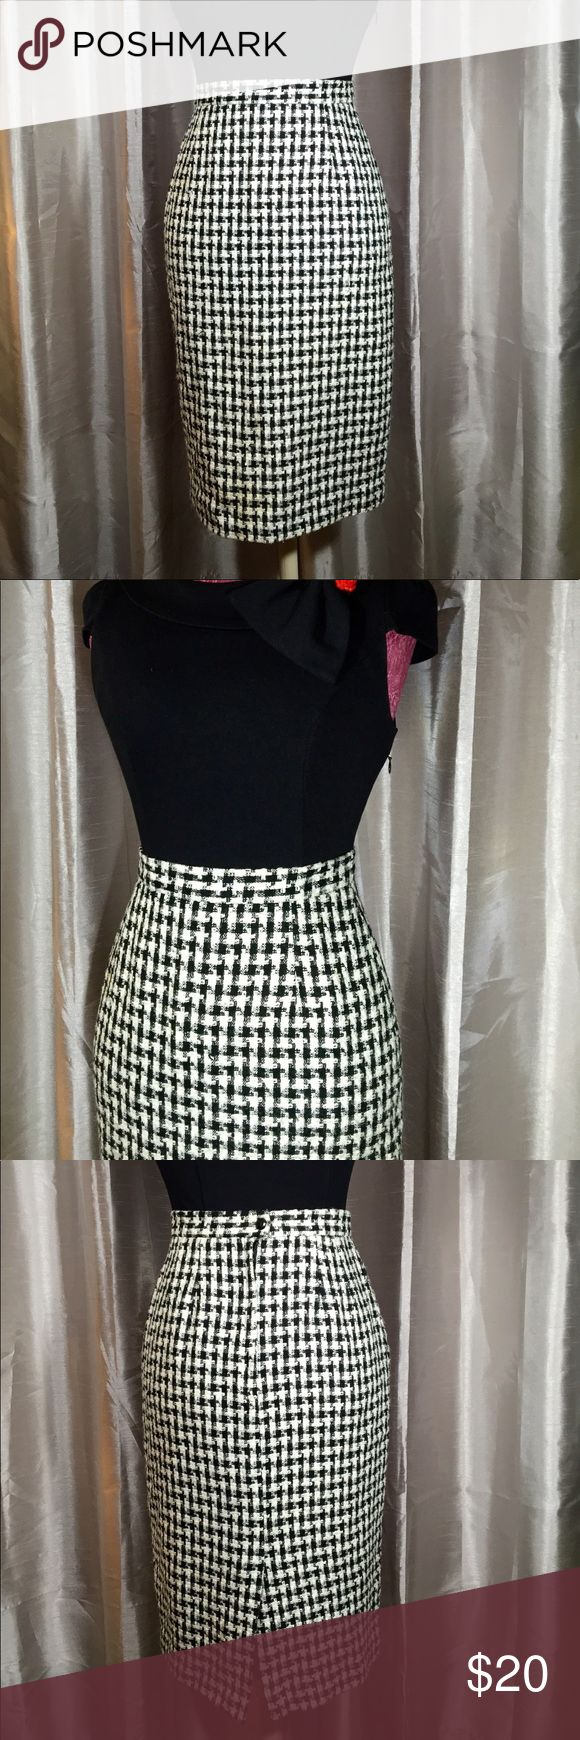 VNTG Black & White Gingham Pencil Skirt Vintage black and white gingham print pencil skirt/ wiggle skirt. Very wool like. Very chic and 1950's trendy. Pairs great with black knee high boots in winter or heels or flats in spring.  Tag says size 6. Fits like a medium.  94% acrylic/ 6% polyester   Measurements: Waist: 28 inches Length:  26 1/2 inches  Make make me an offer! I love to make deals! Vintage Skirts Pencil